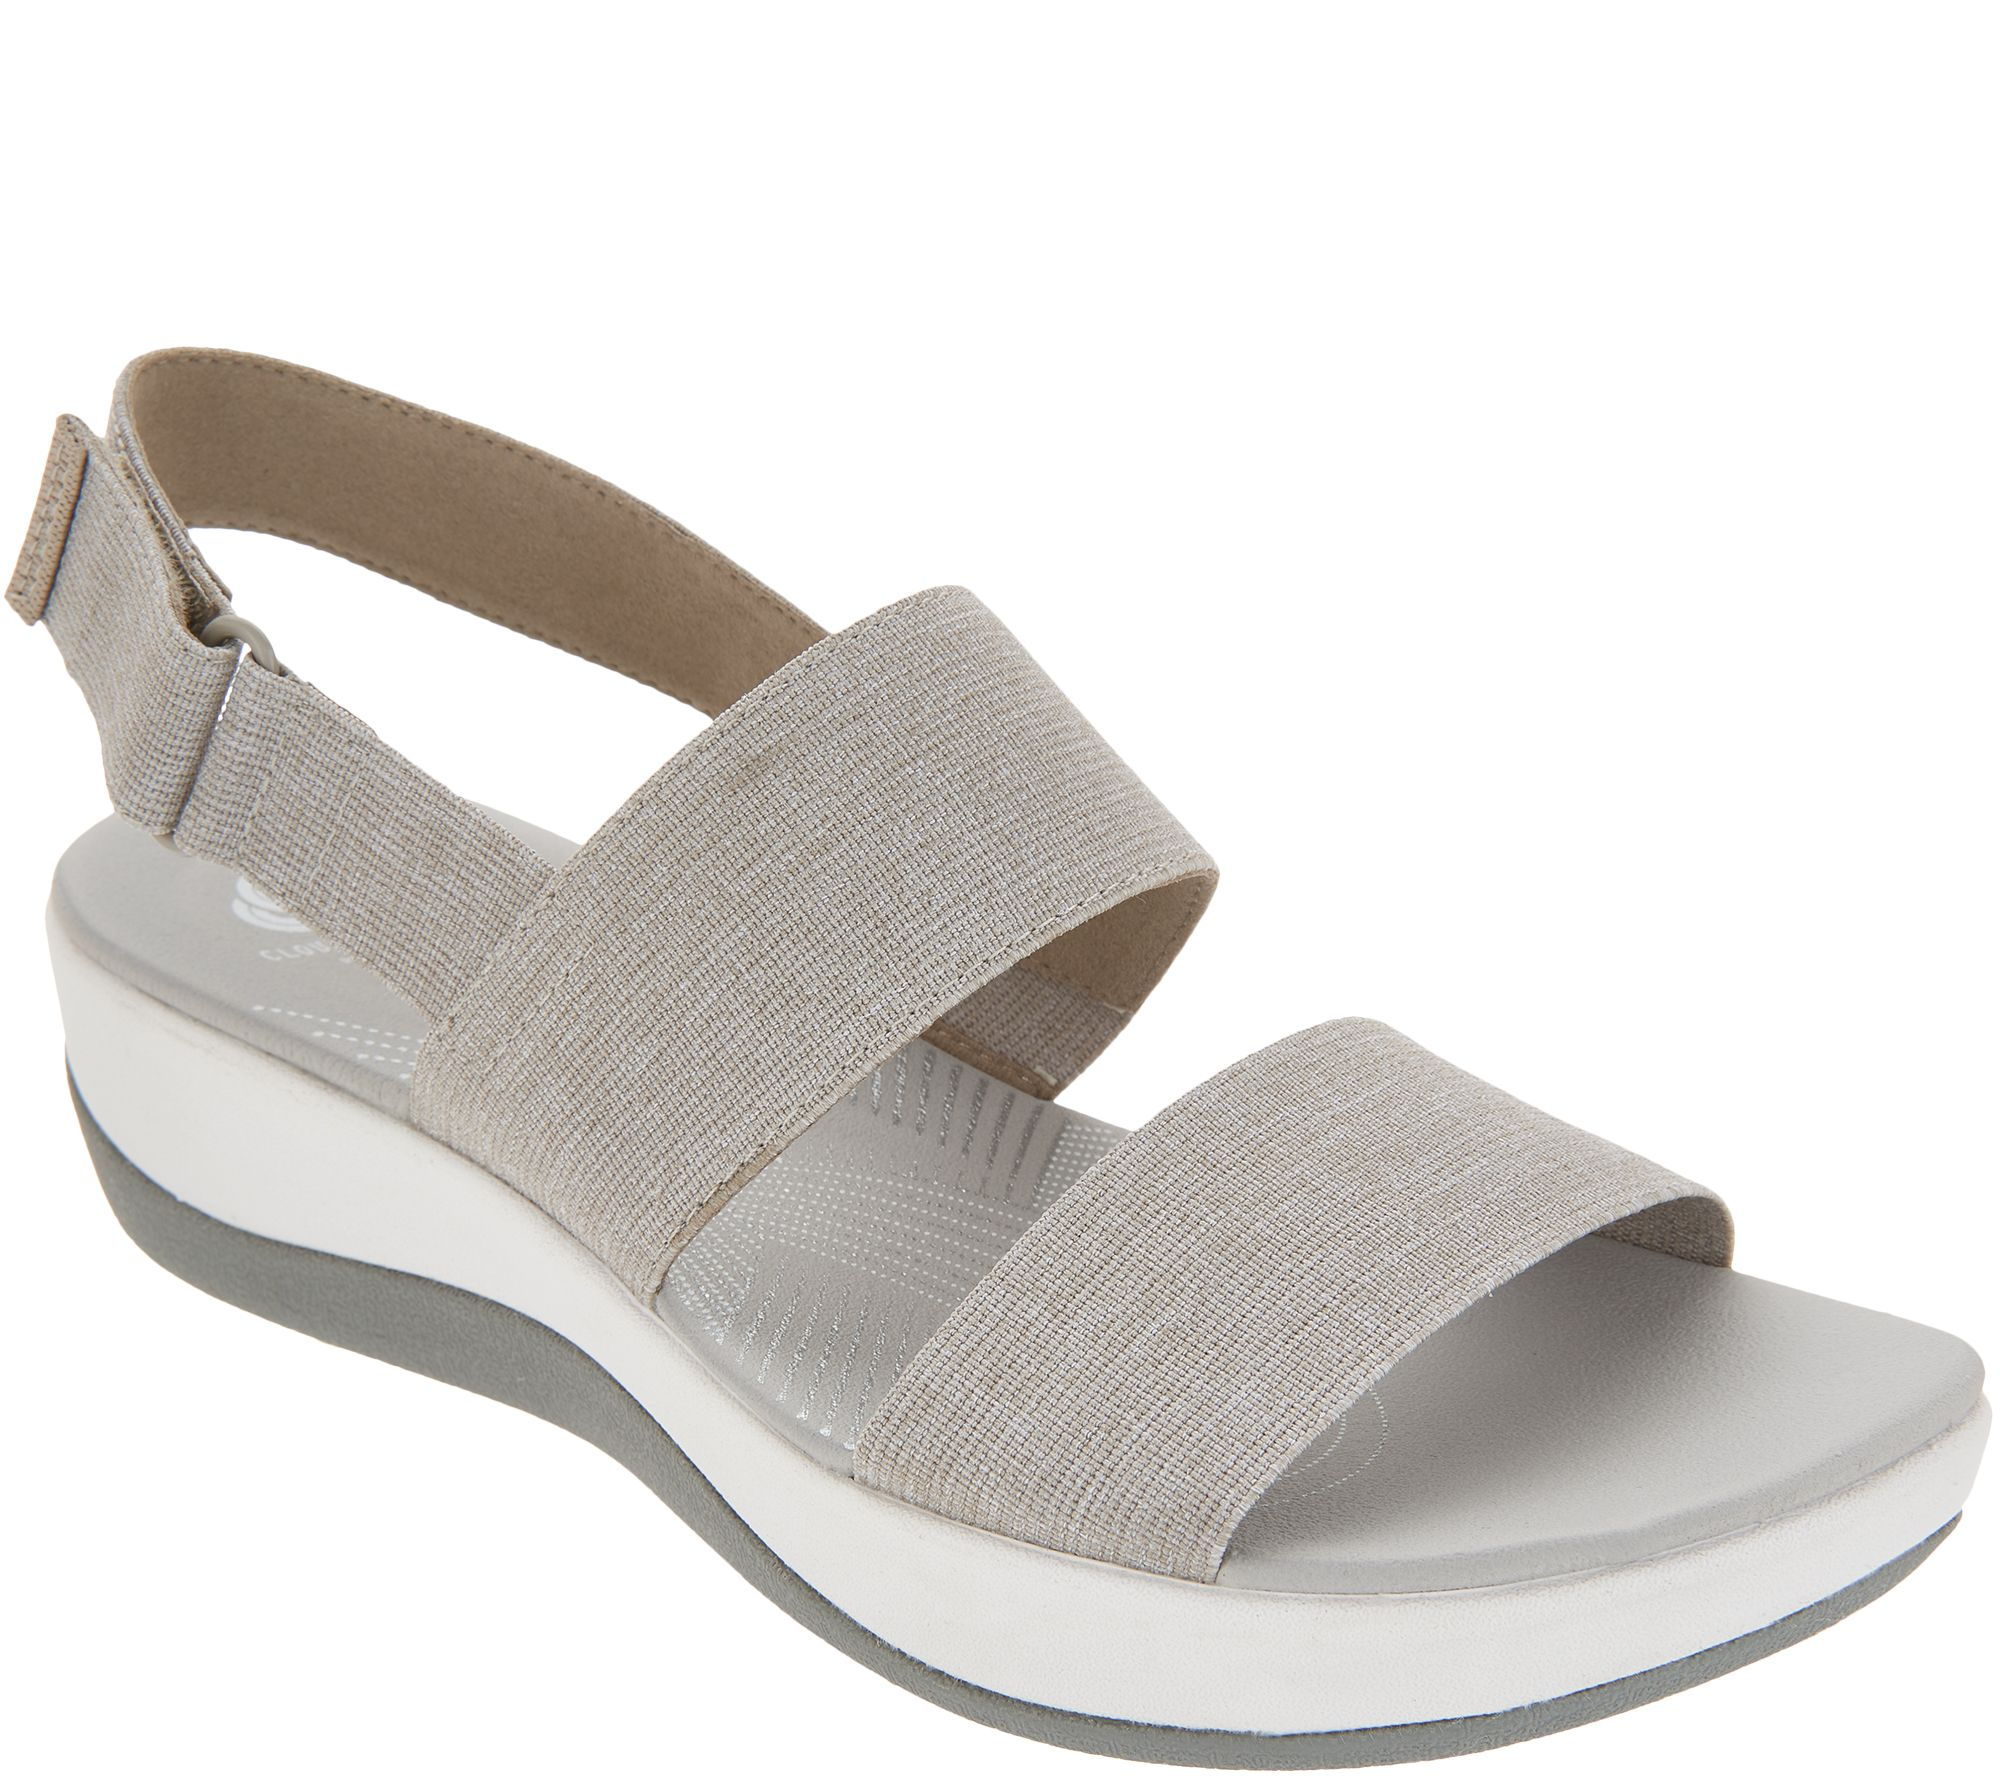 a976827059f3 CLOUDSTEPPERS by Clarks Sport Sandals - Arla Jacory - Page 1 — QVC.com